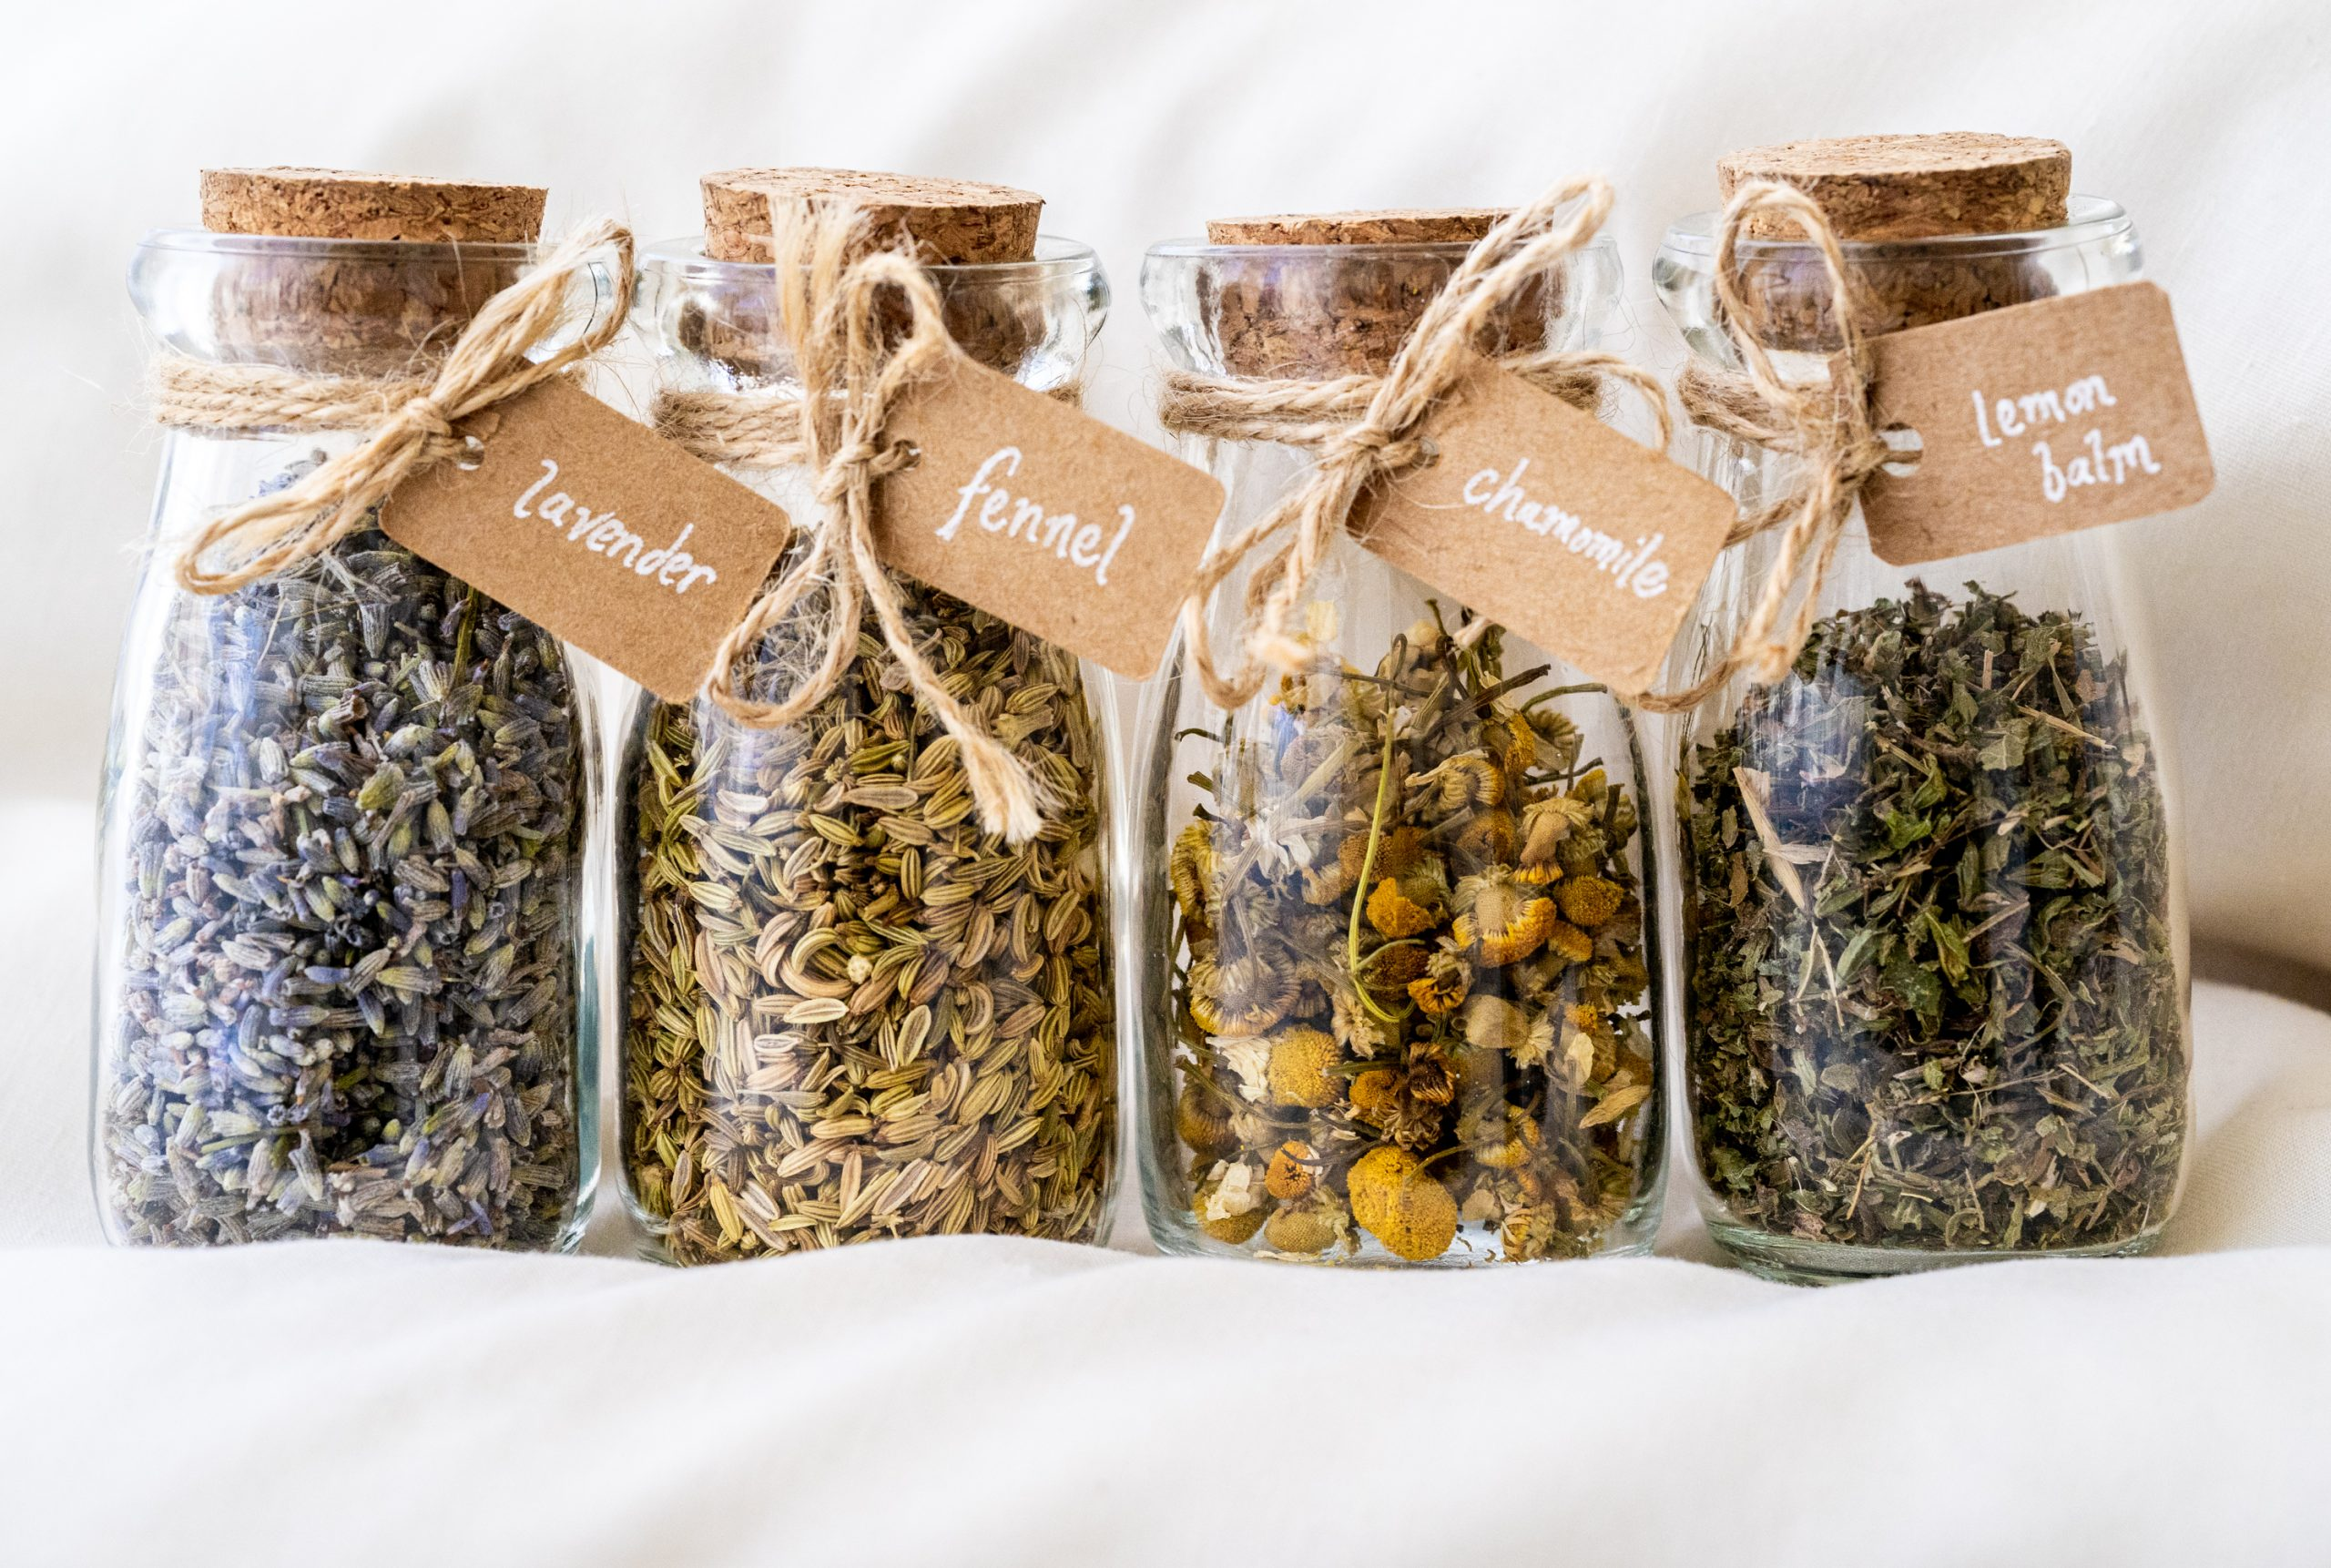 a photo of dried herbs in jars: lavender, fennel, chamomile, and lemon balm